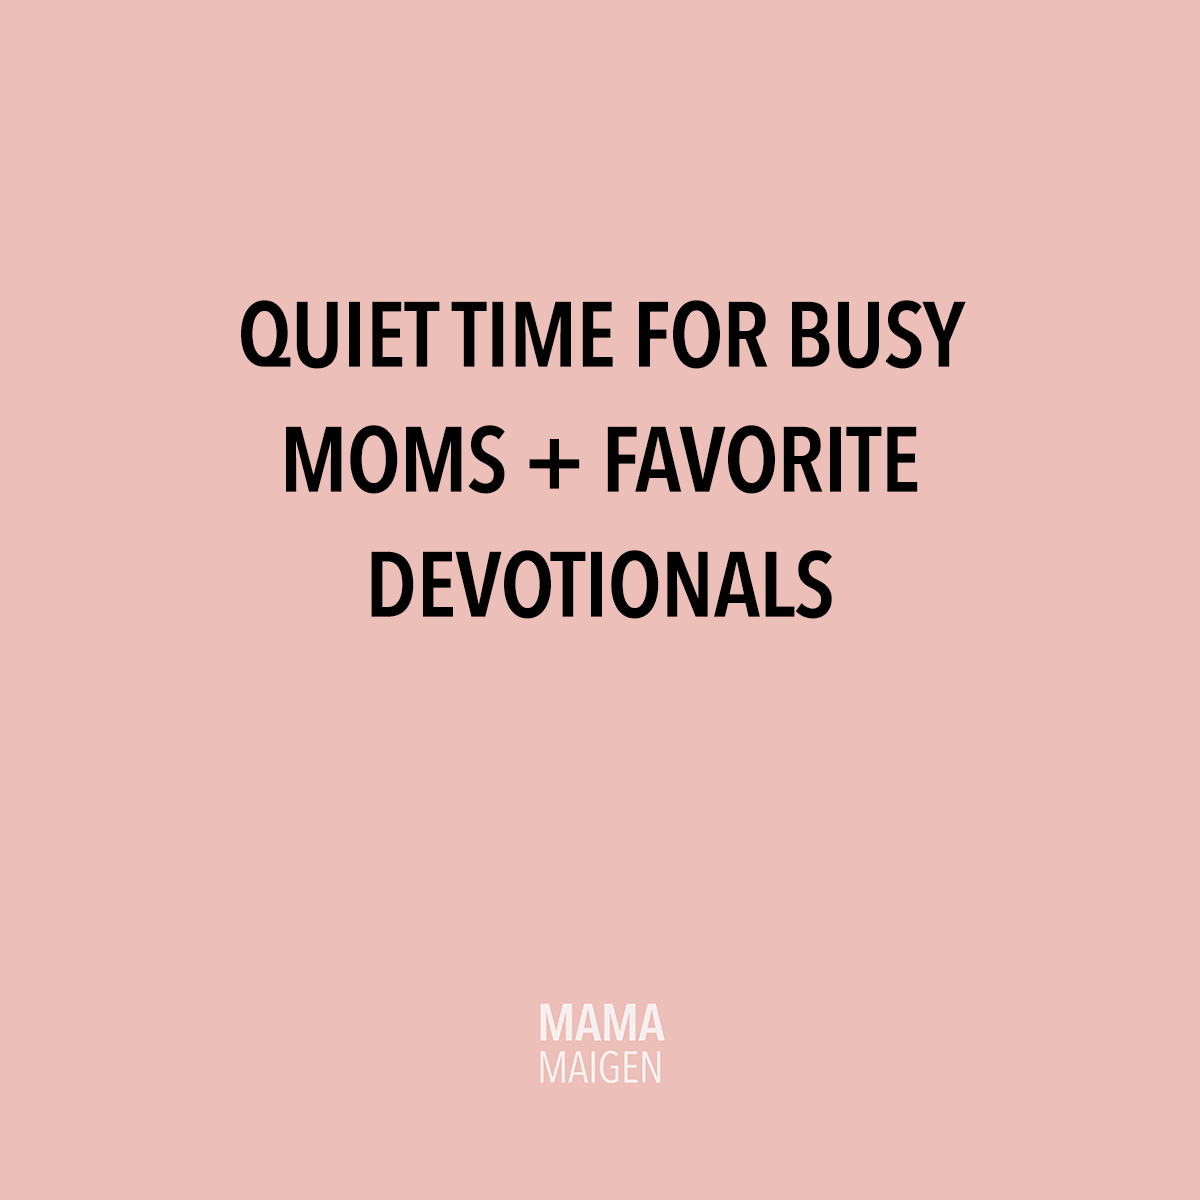 Quiet Times for Busy Moms